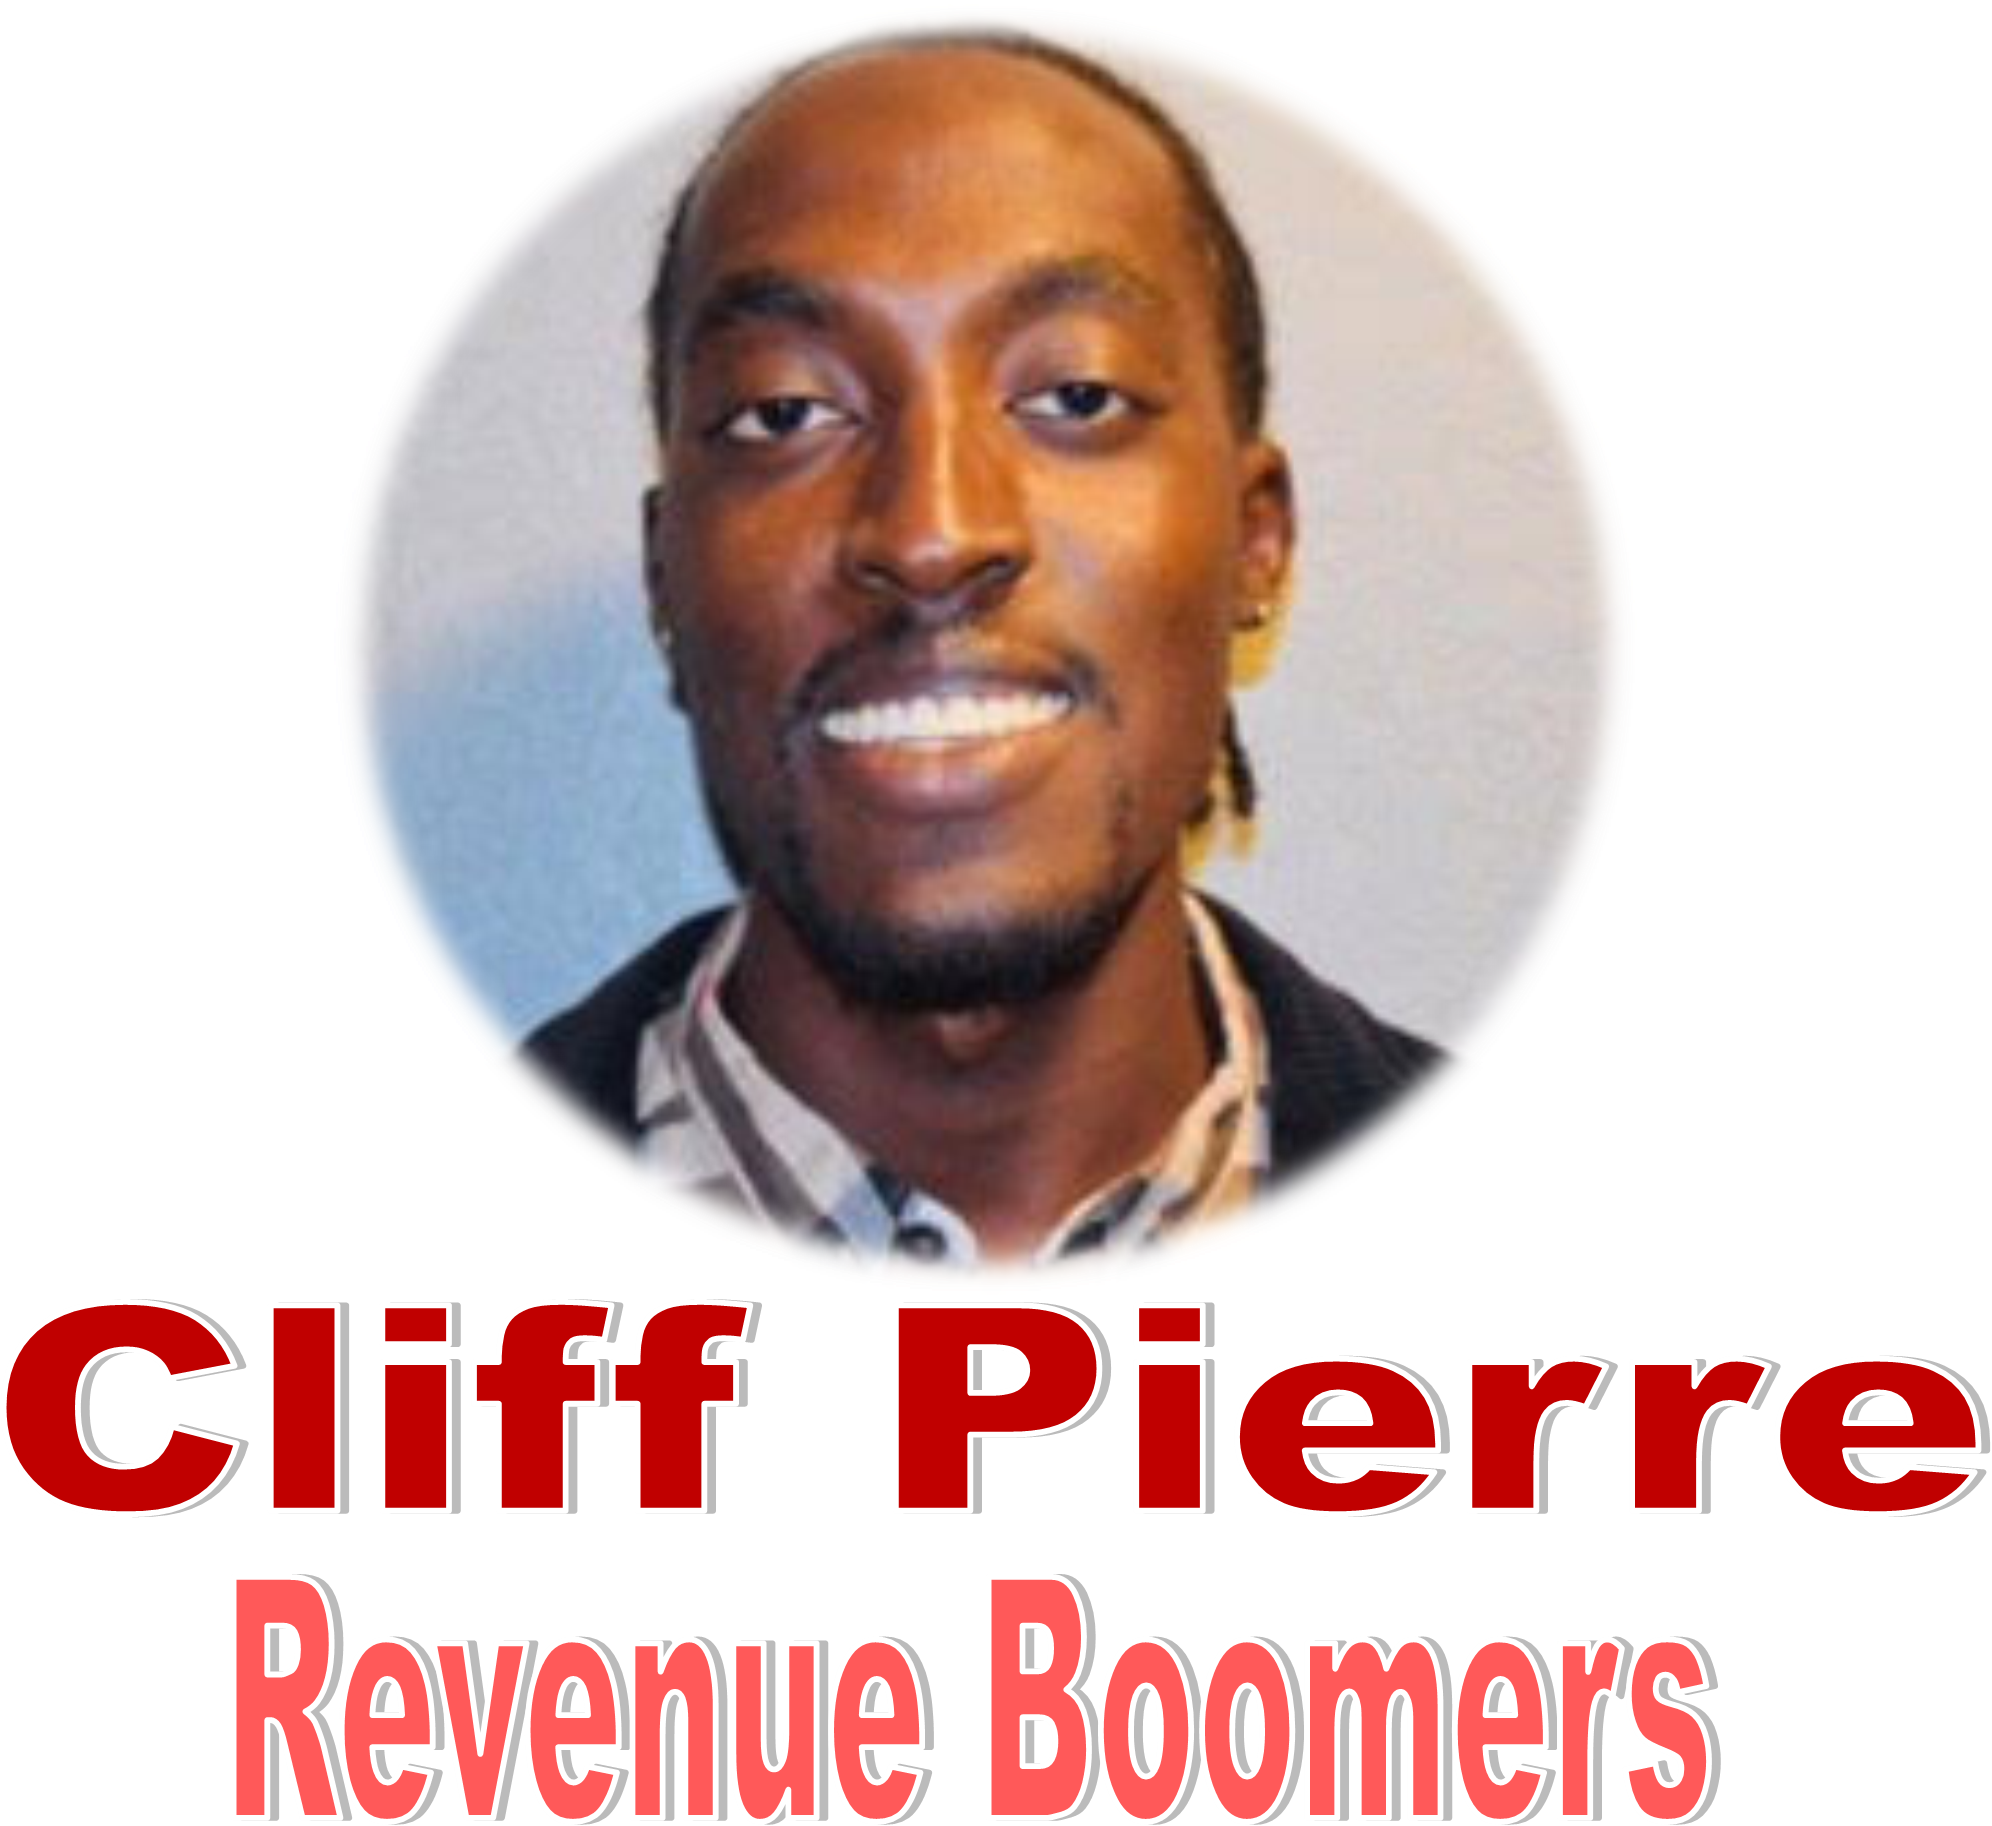 Cliff Pierre